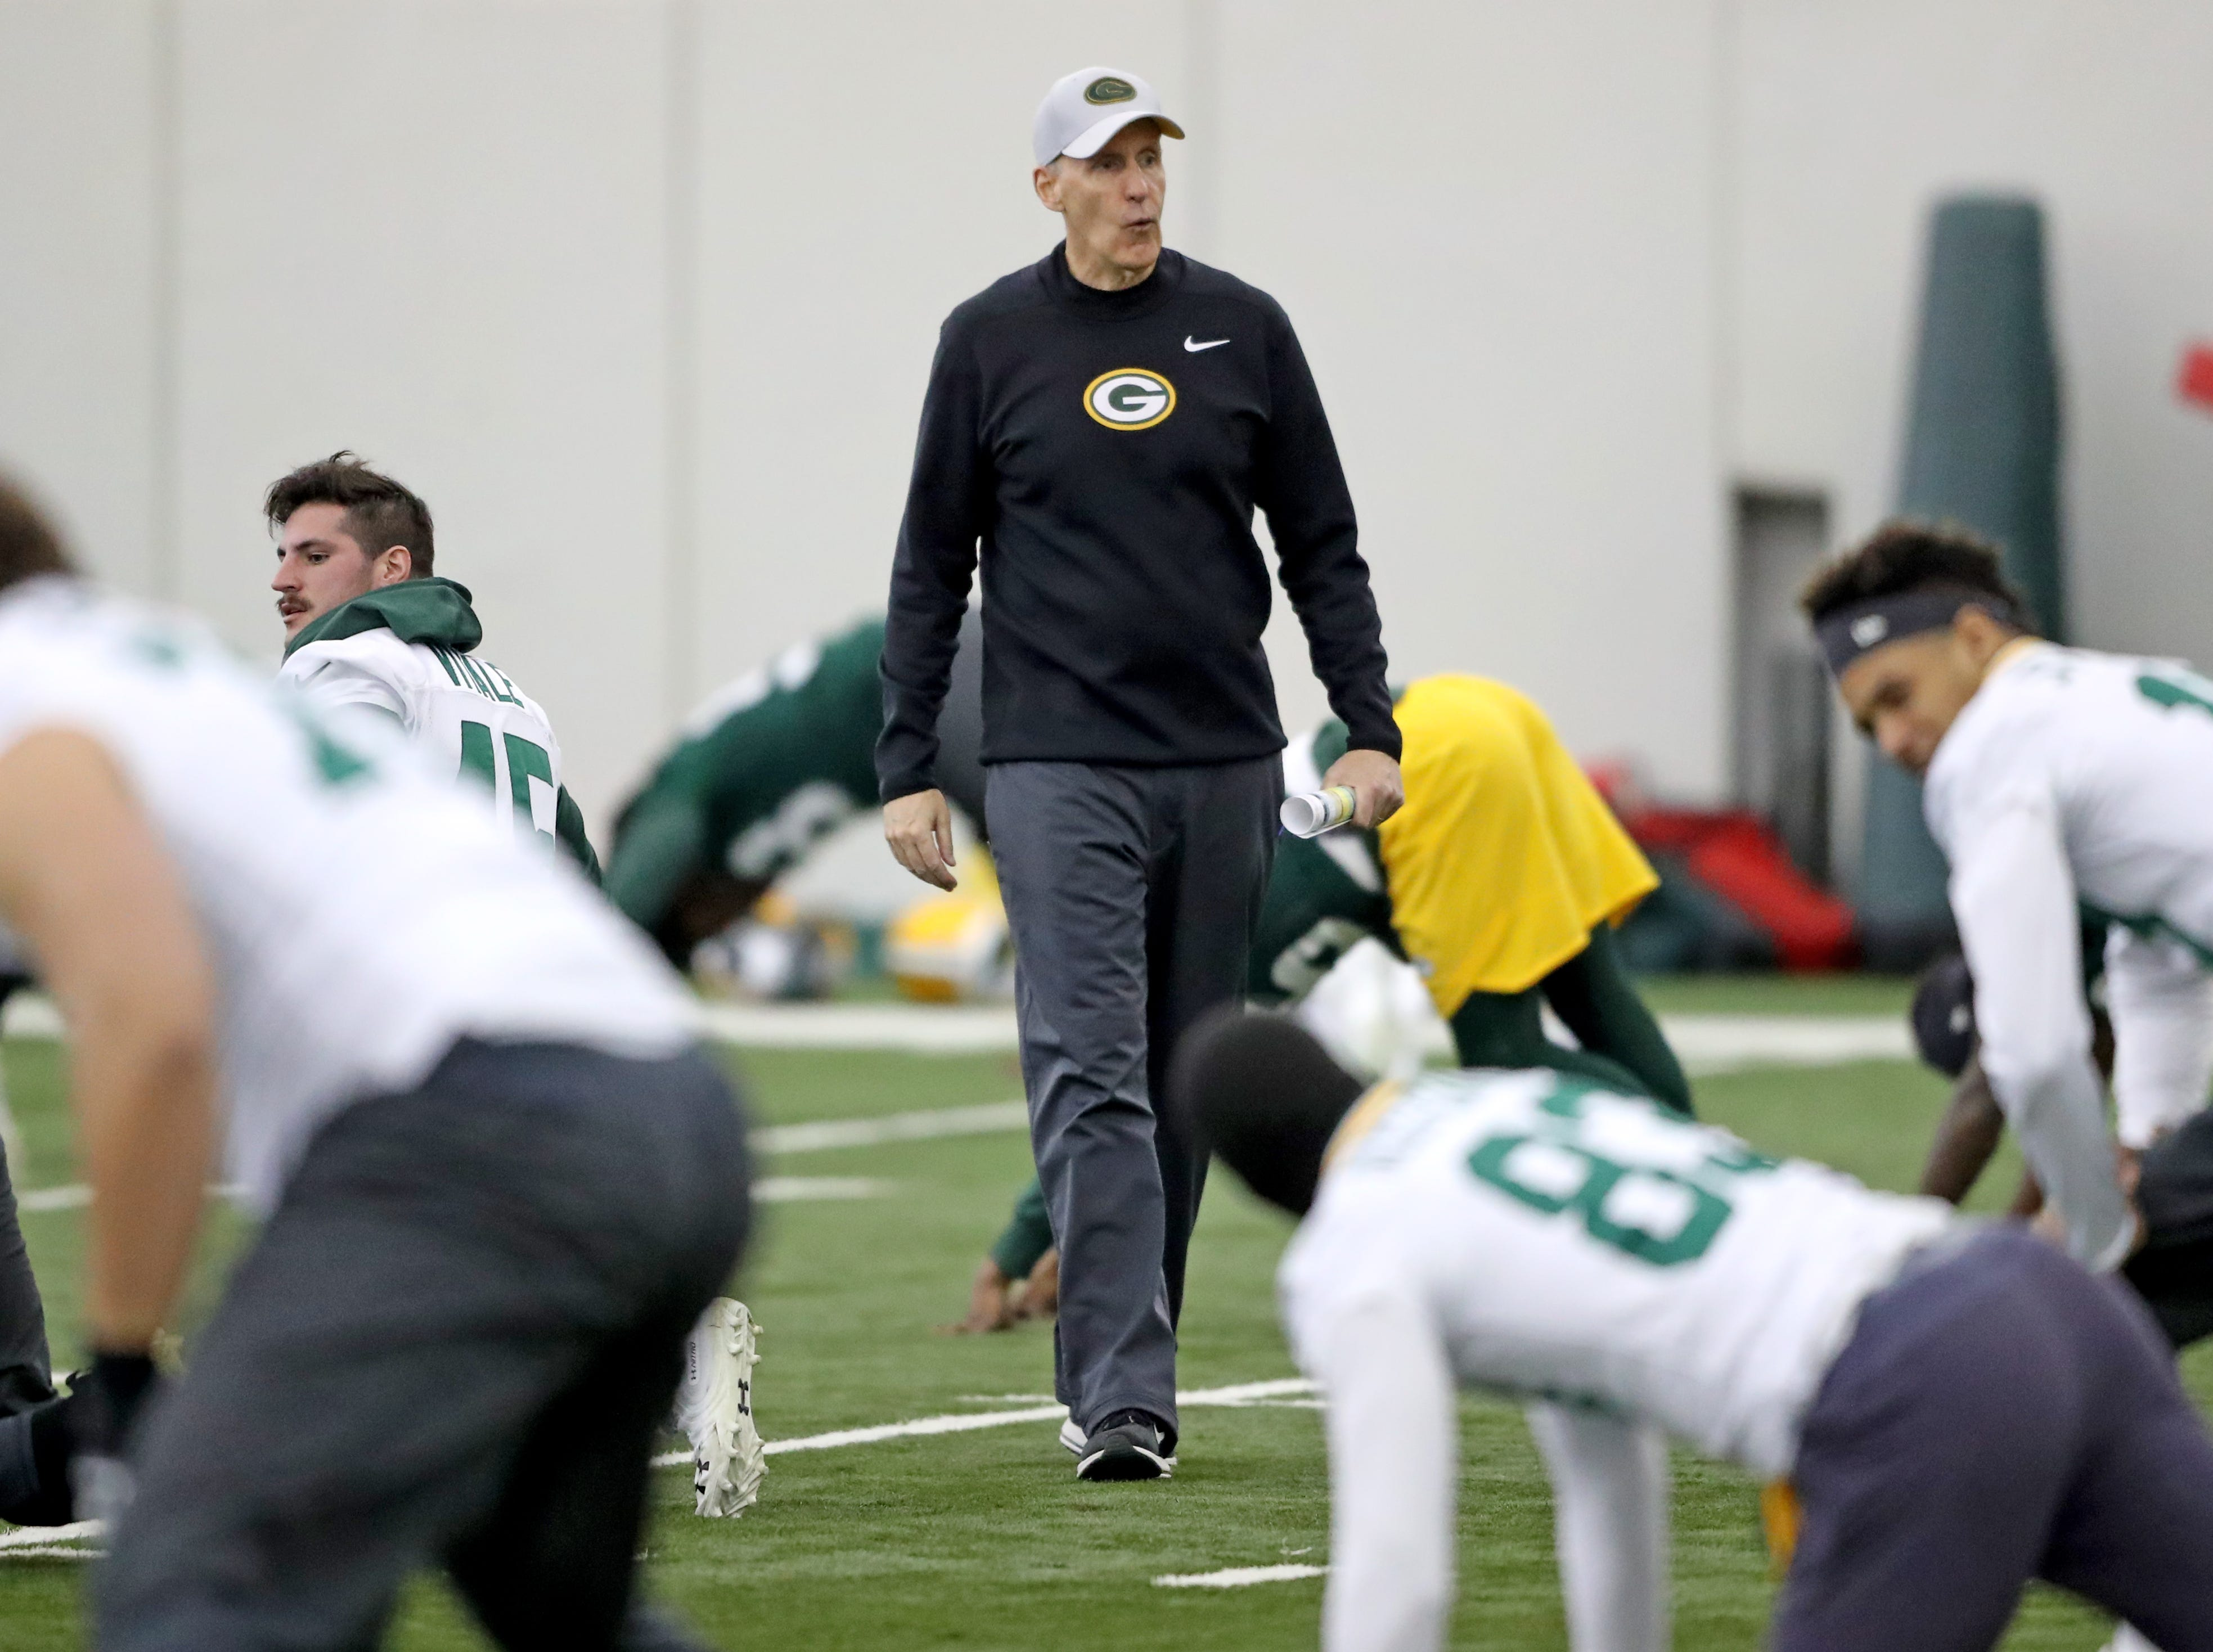 Green Bay Packers interim head coach Joe Philbin during practice Wednesday, December 12, 2018 in the Don Hutson Center in Ashwaubenon, Wis.